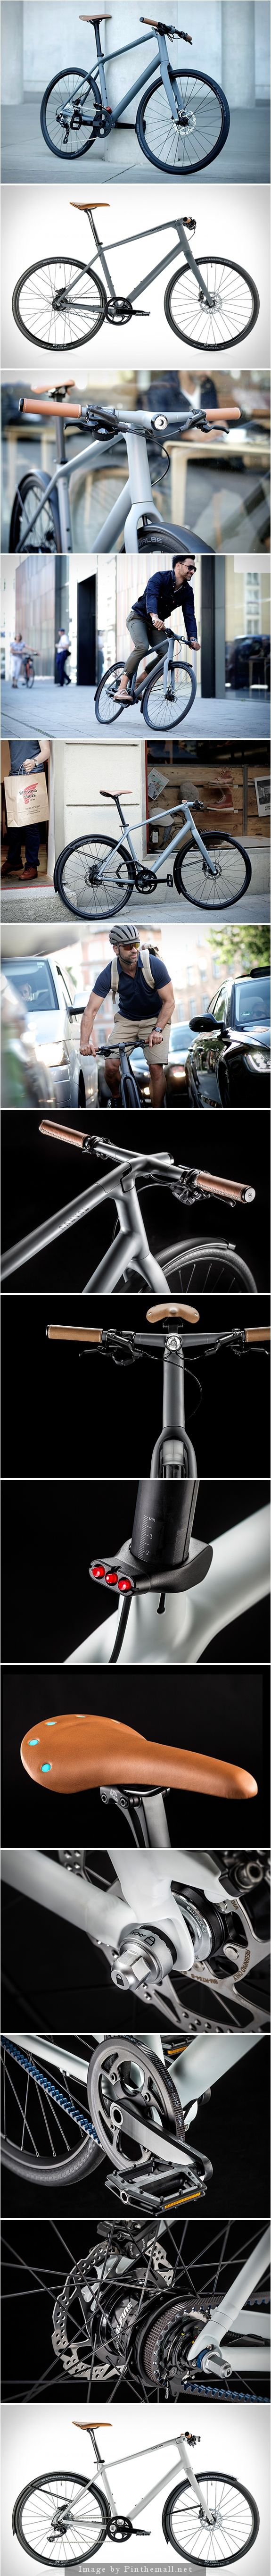 CANYON URBAN BIKE - Tap the link to shop on our official online store! You can also join our affiliate and/or rewards programs for FREE!